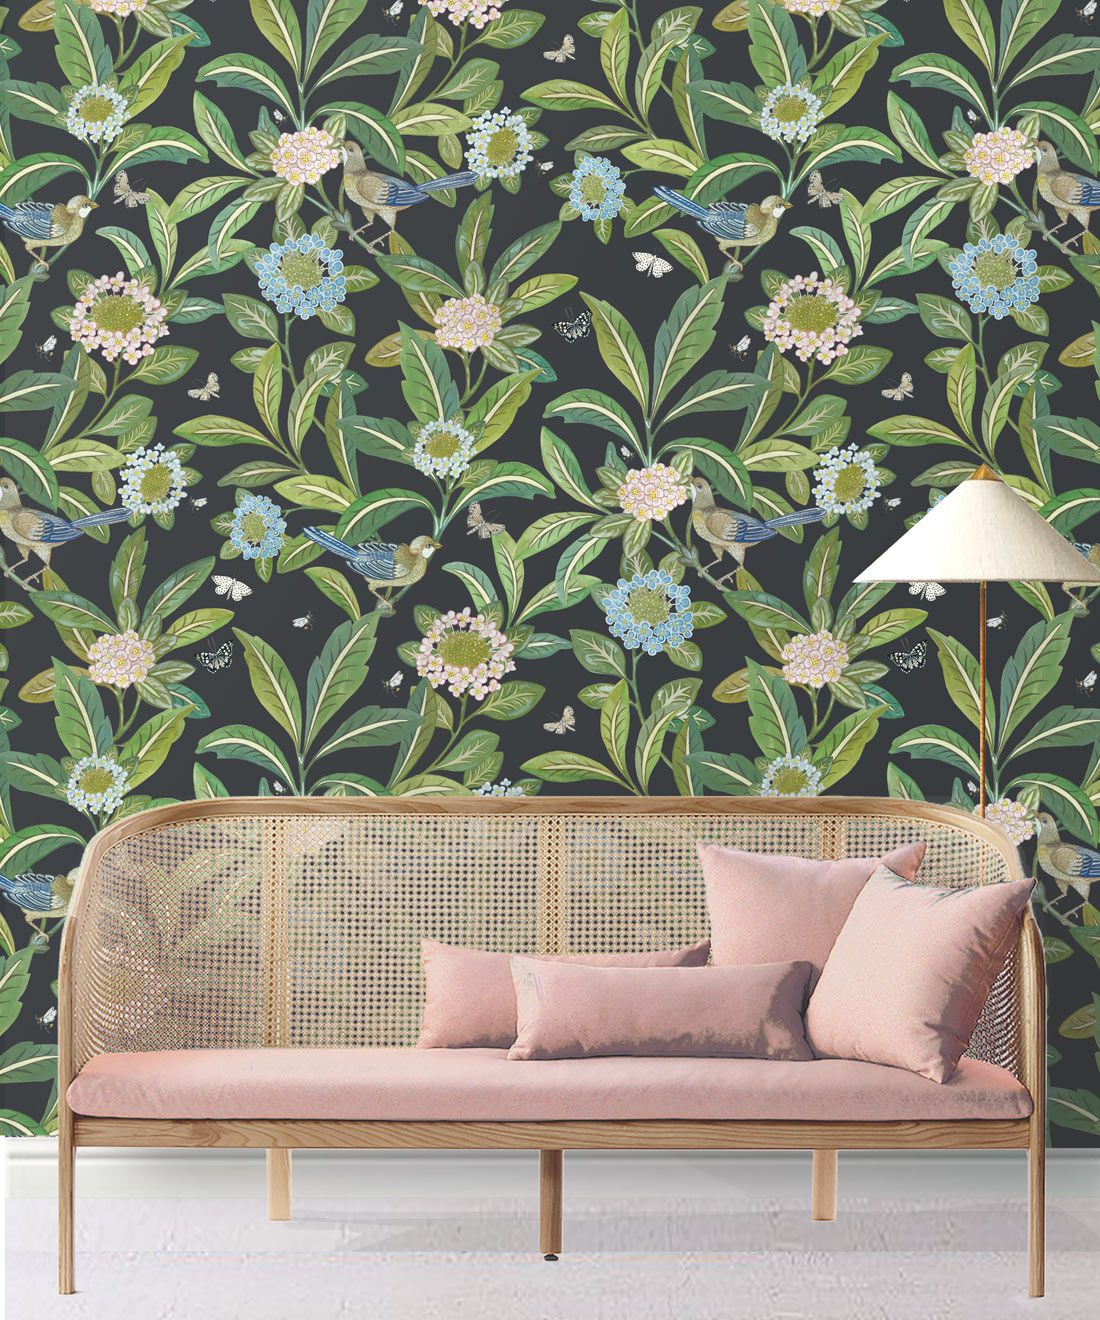 Summer Garden Wallpaper • Charcoal Wallpaper • Floral Wallpaper Insitu with pink sofa